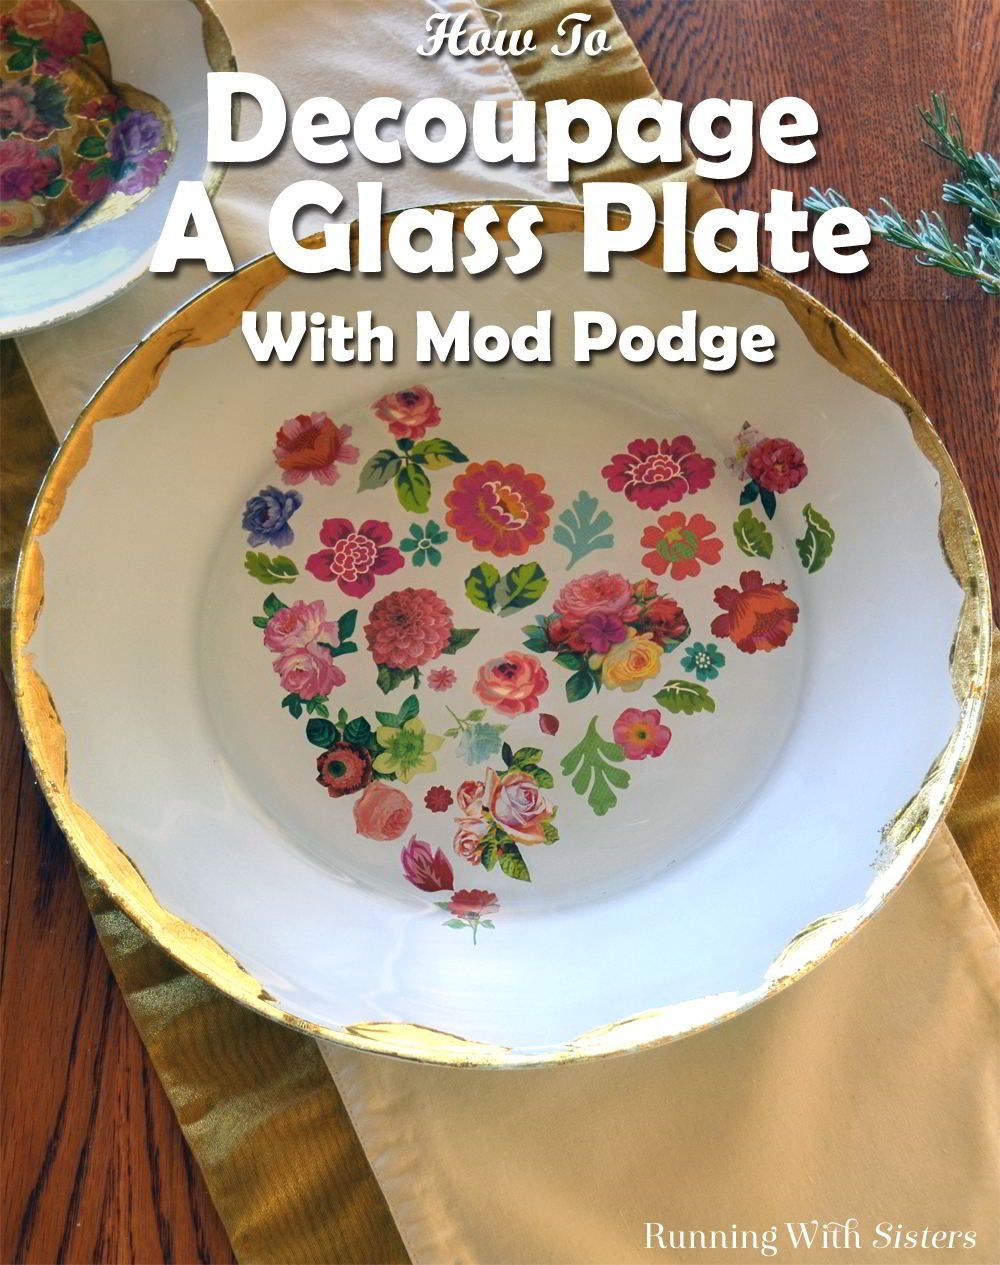 Sweet Heart Plate: How To Decoupage On Glass